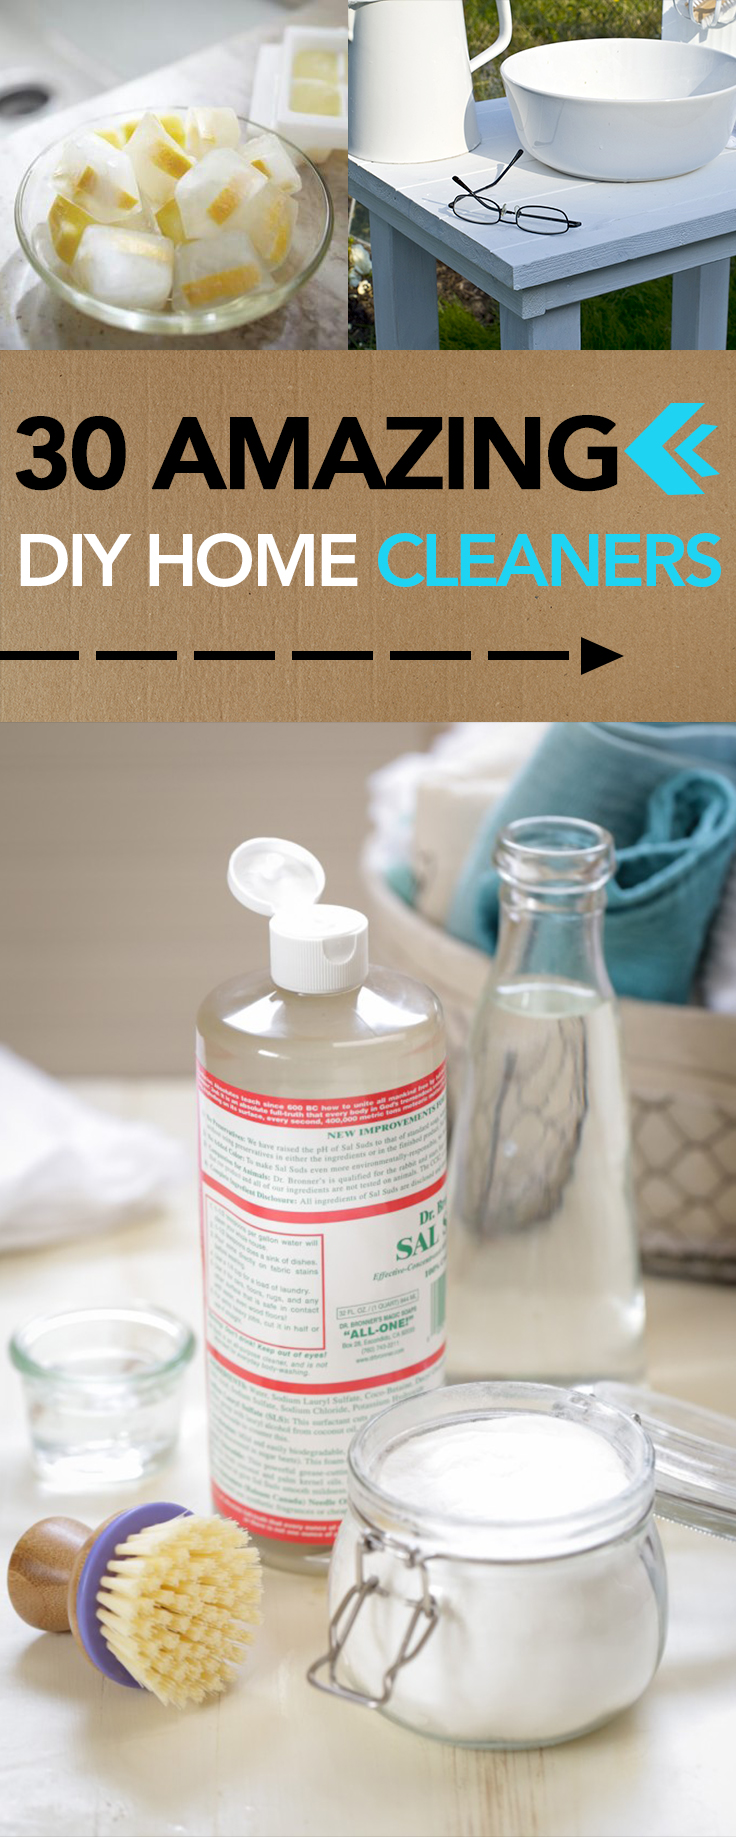 DIY home cleaners, DIY cleaning products, cleaning products, cleaning, cleaning hacks, popular pin, easy home cleaner, DIY natural cleaners, homemade cleaners.